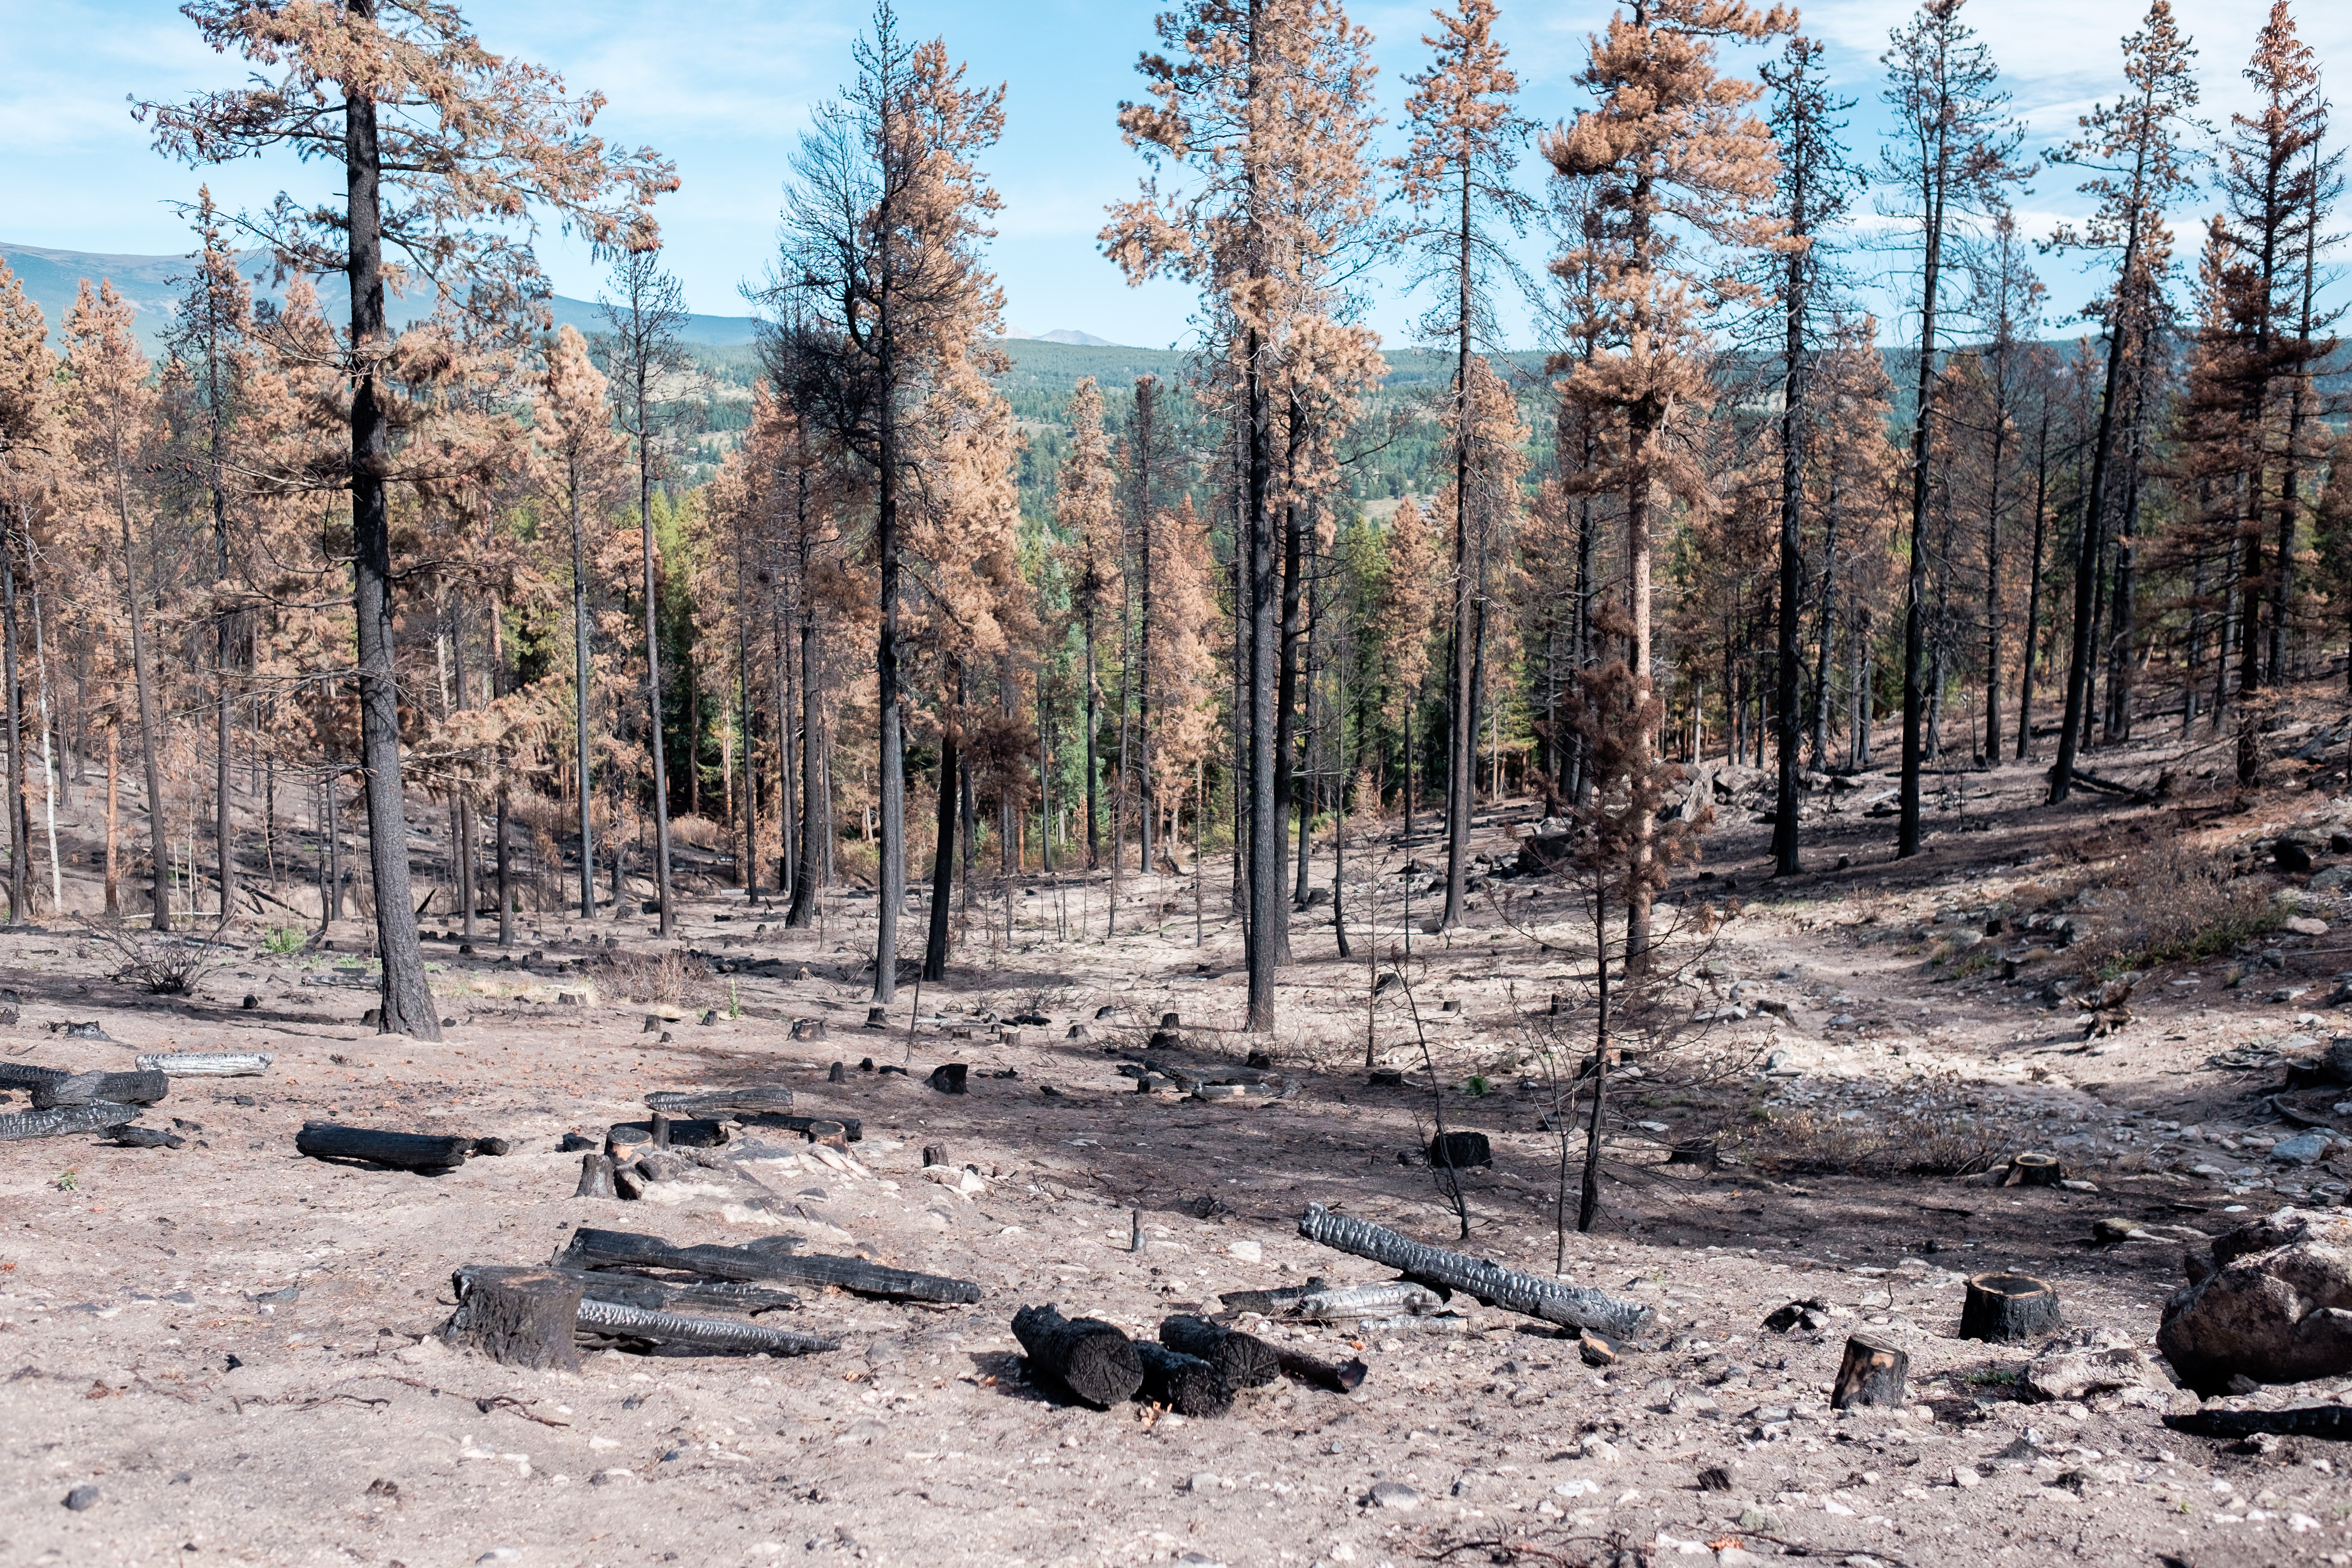 Burned trees after the Cold Springs wildfire.